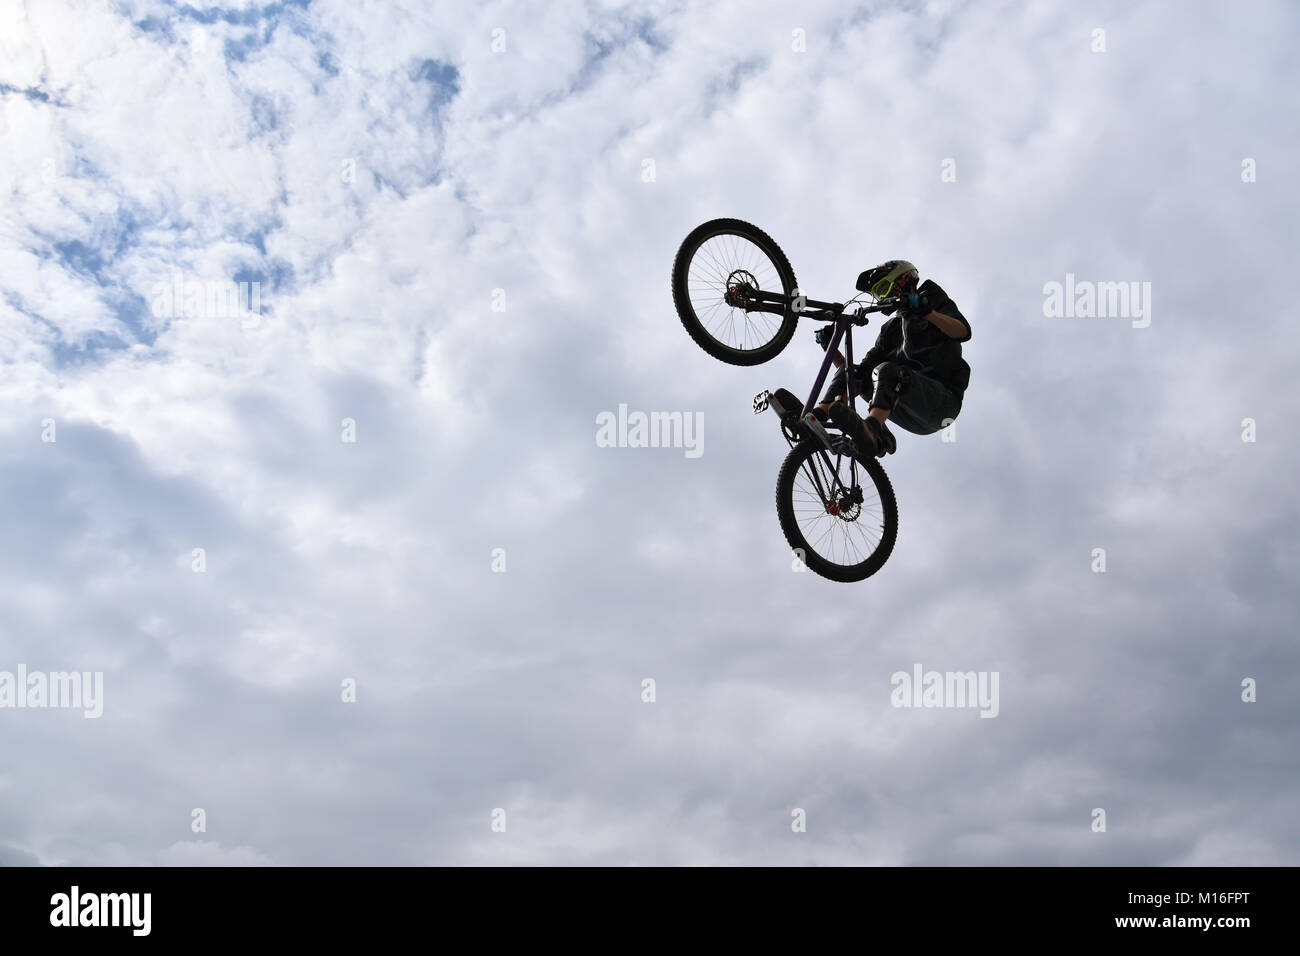 Silhouette of a young man freestyle stunt cyclist flying in the sky performing stunt jump from a skatepark ramp - Stock Image